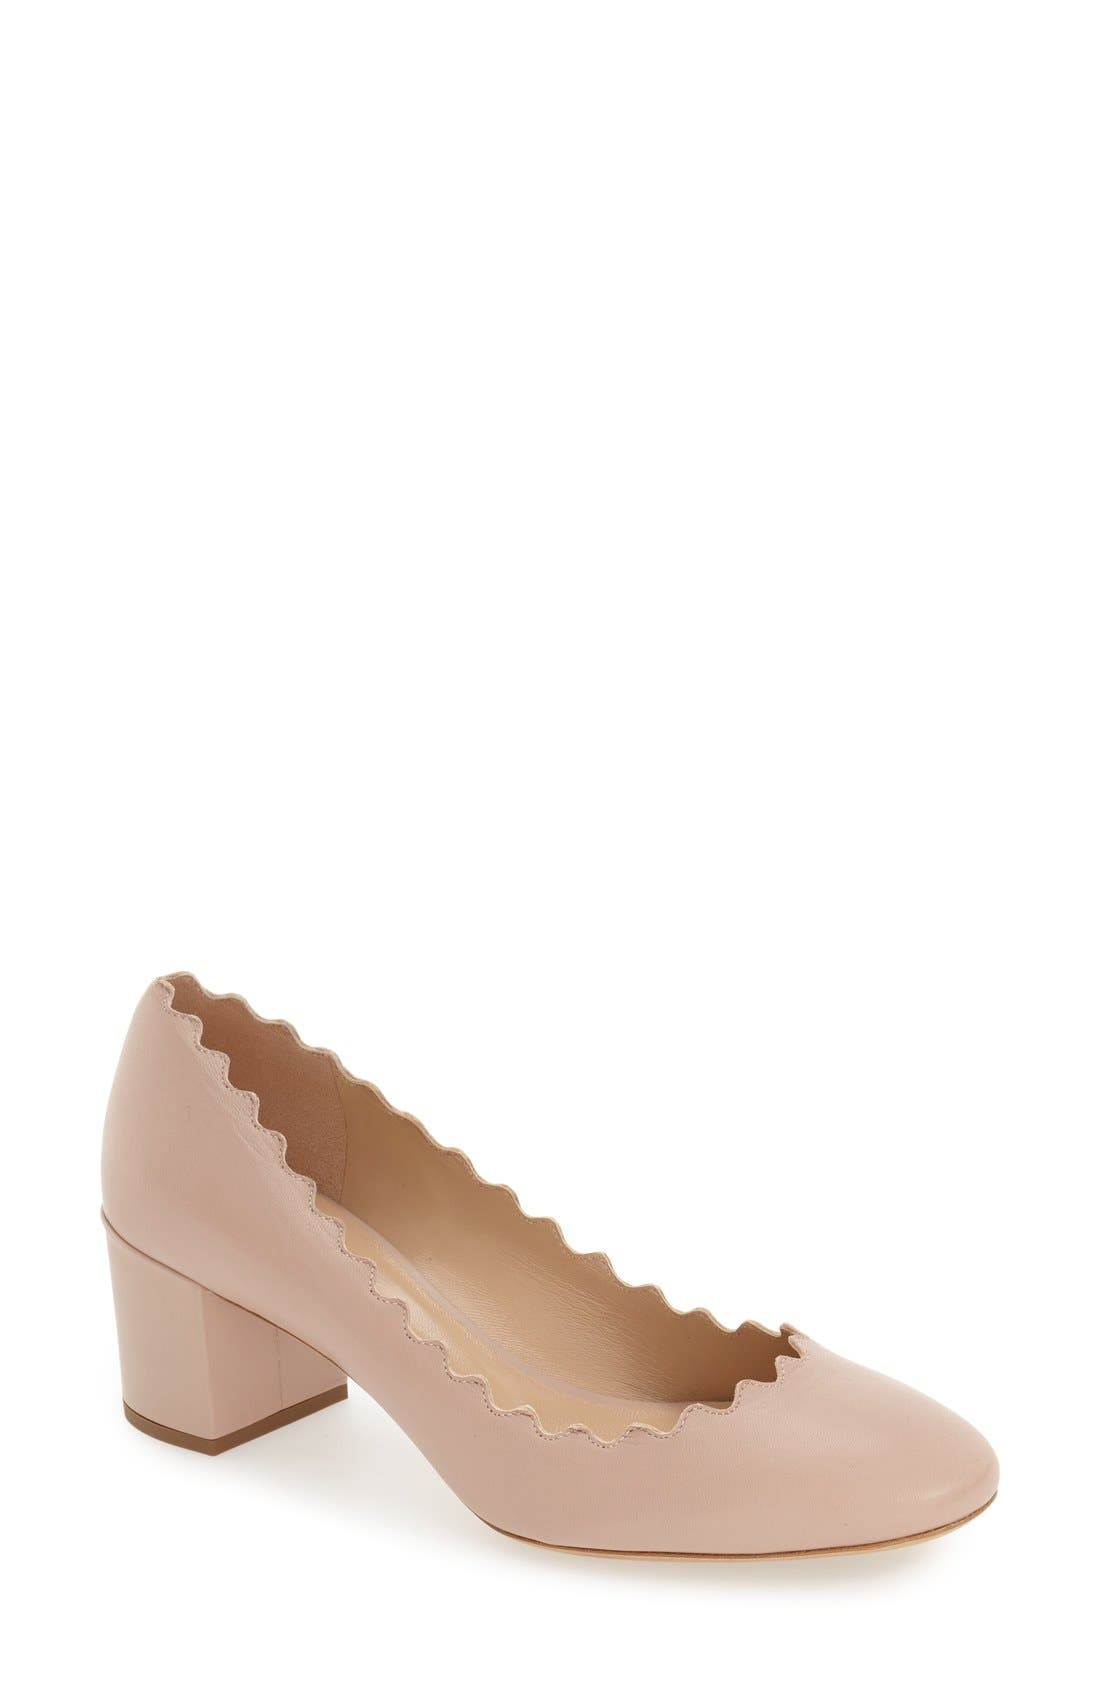 Chloé Lauren Scalloped Pump (Women)